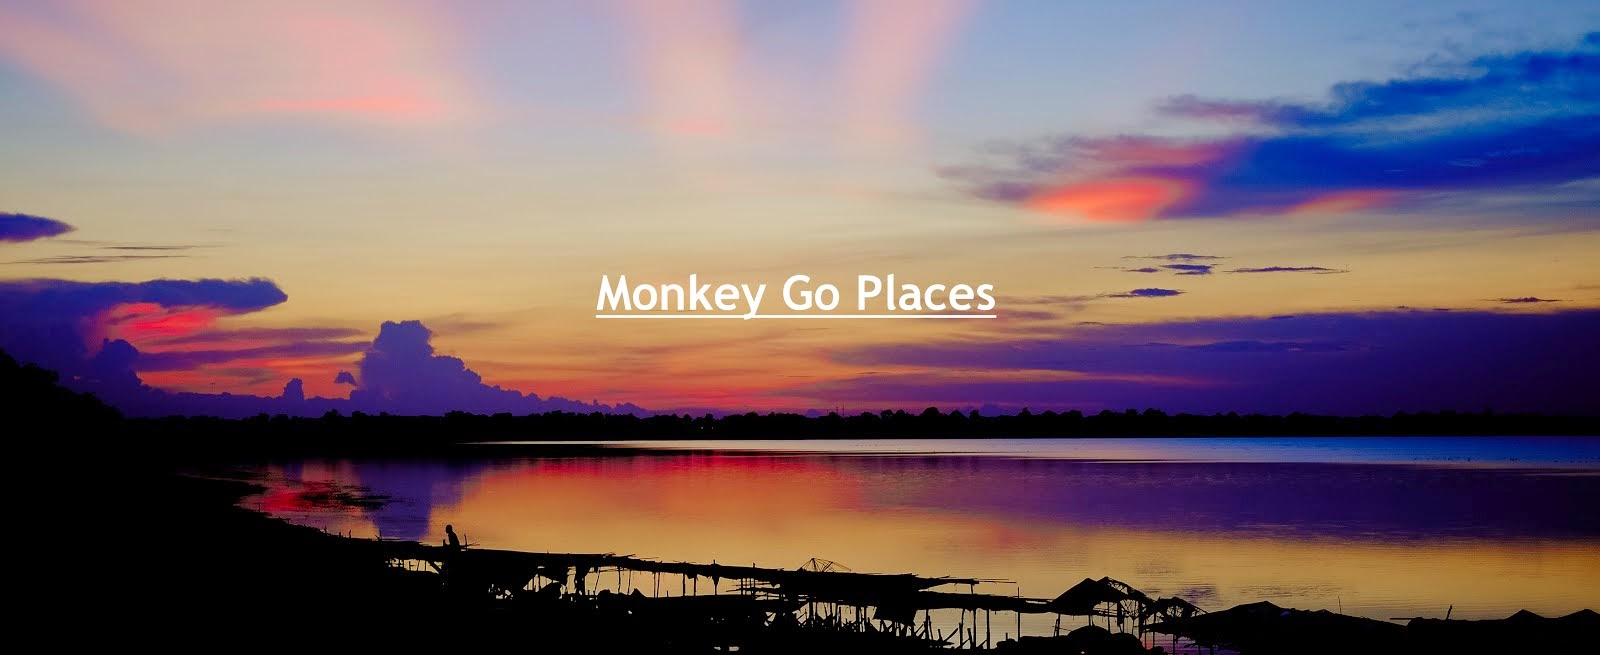 Monkey Go Places